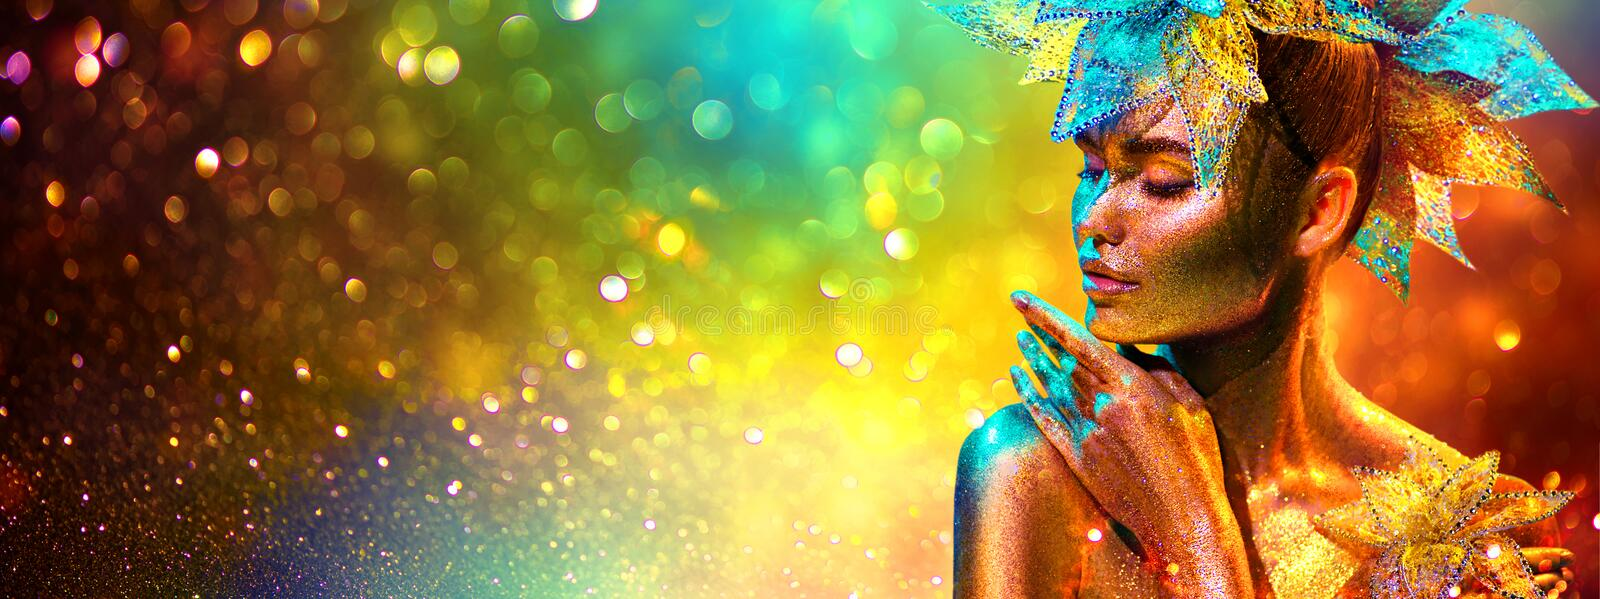 Golden Fashion model woman with bright golden sparkles on skin posing, fantasy flower, portrait of beautiful girl glowing makeup royalty free stock image